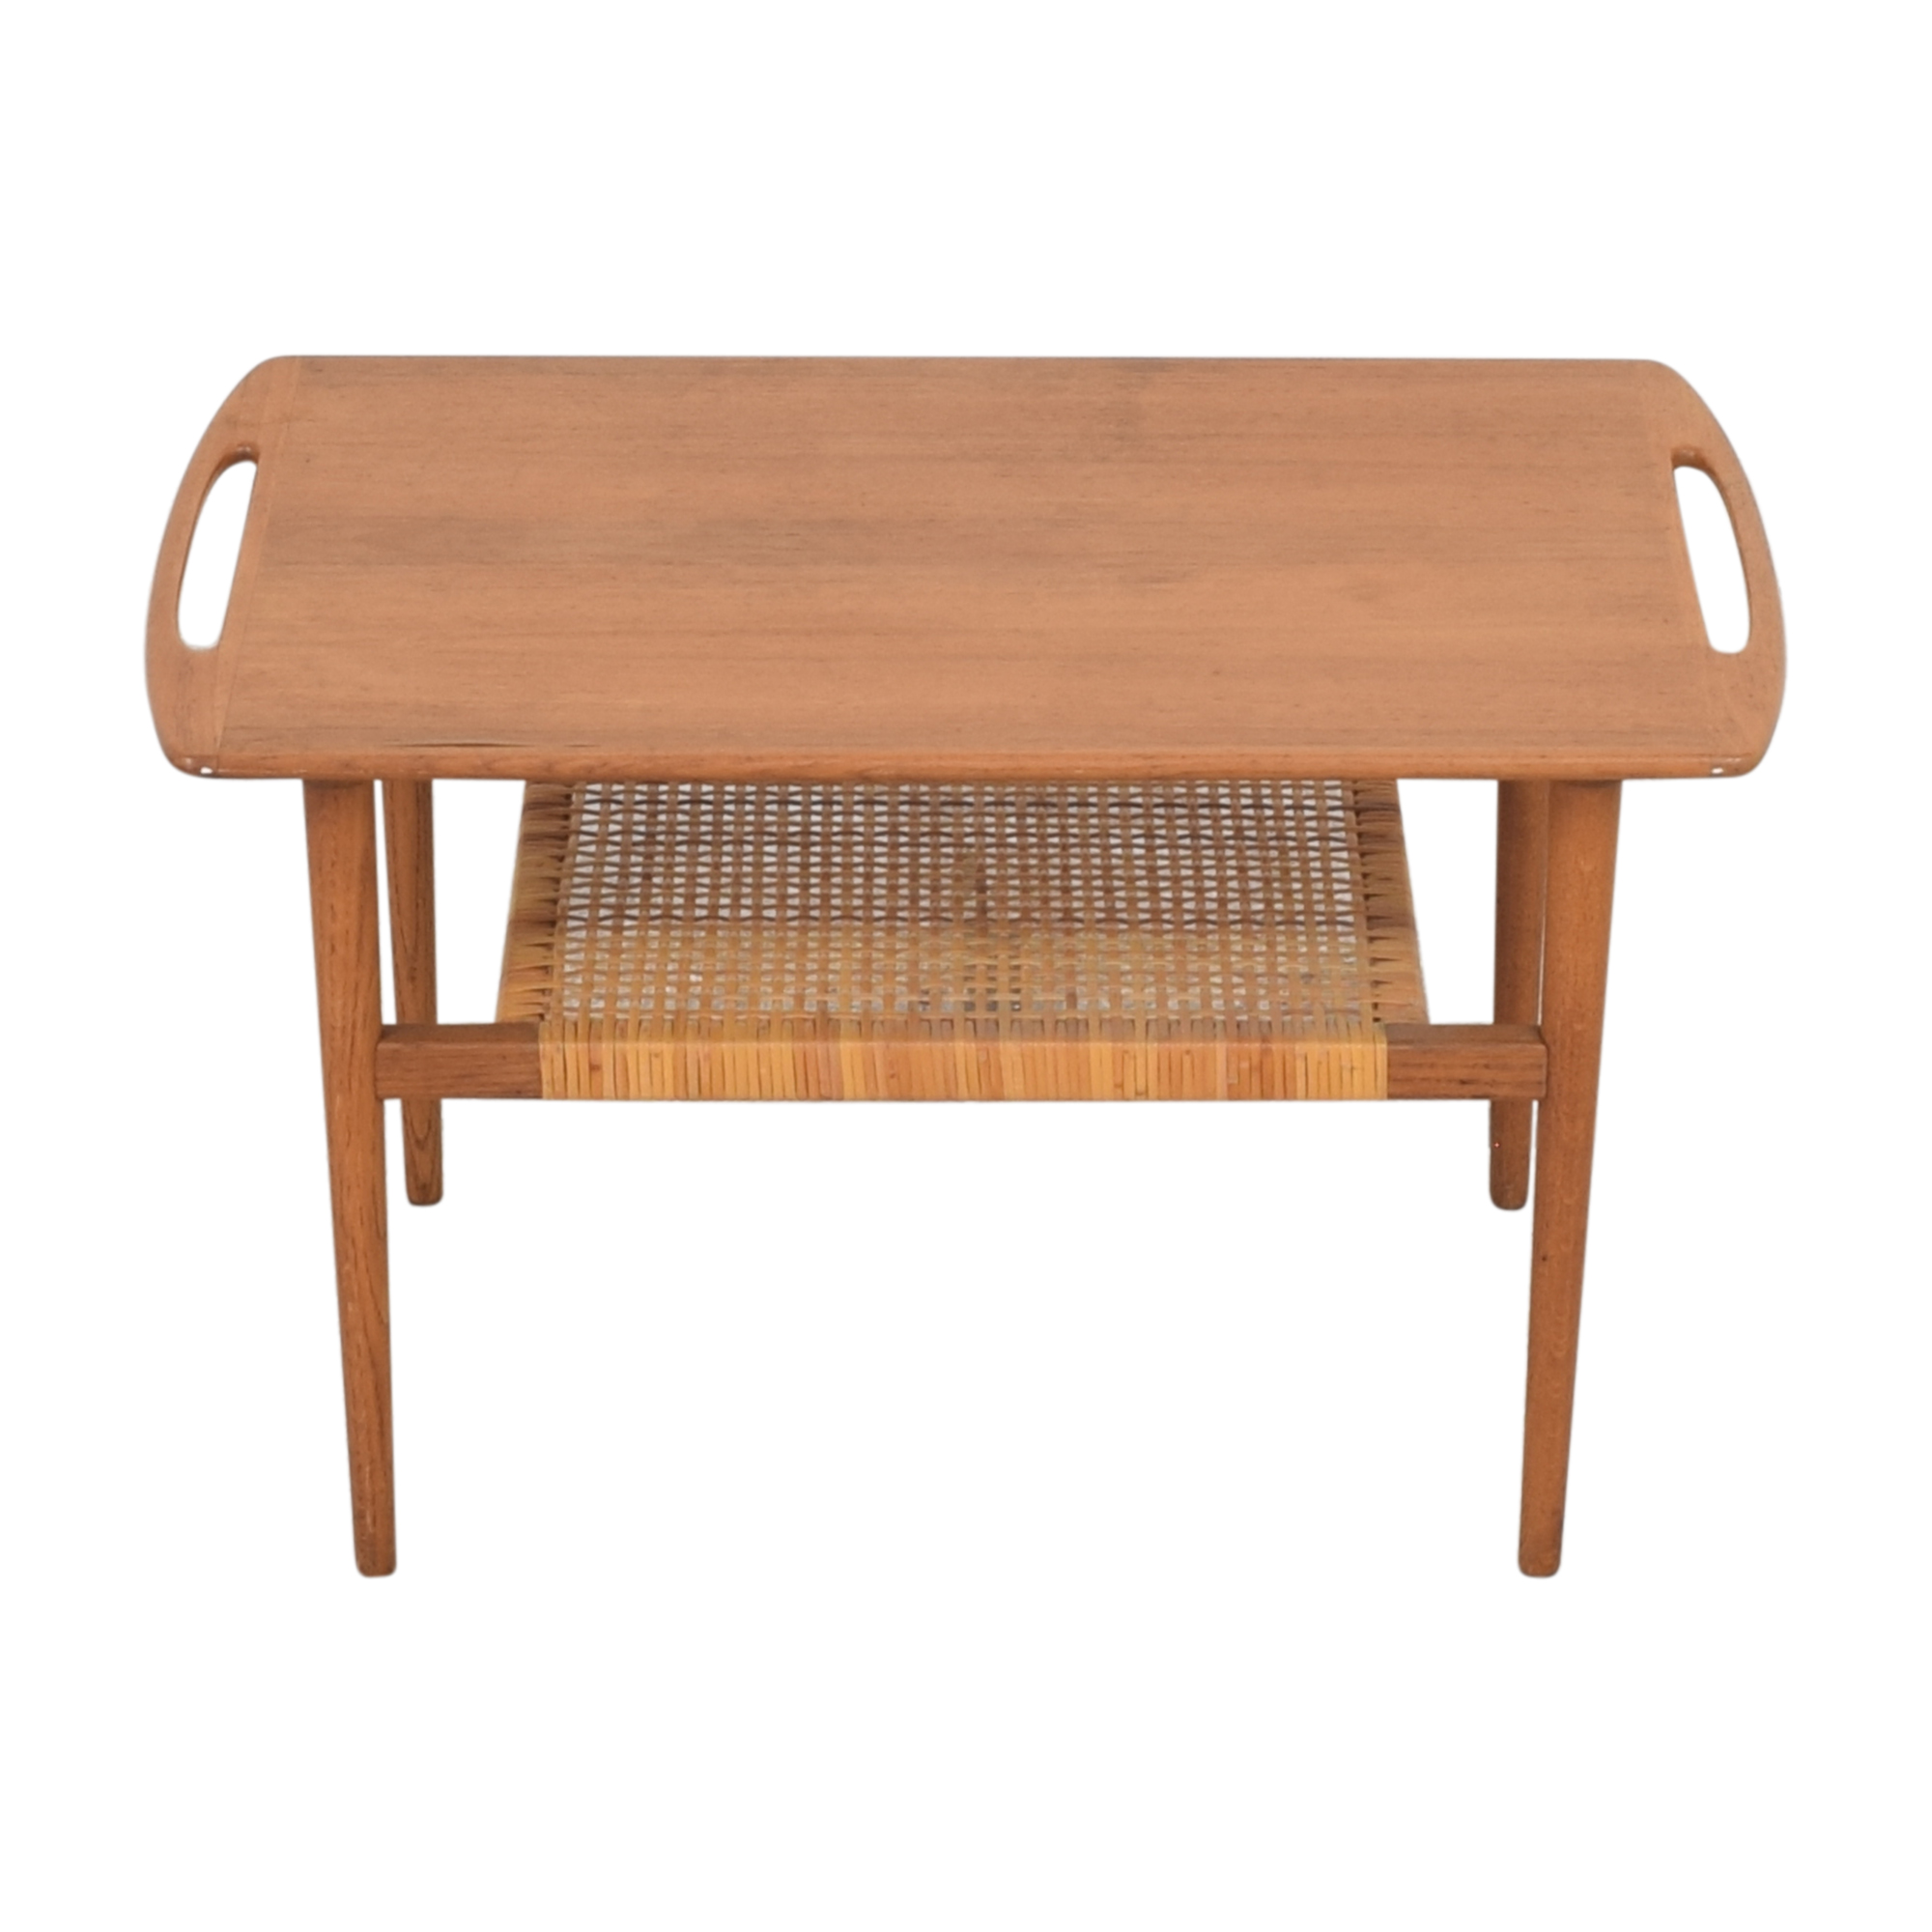 Andreas Tuck Andreas Tuck Cane Shelf Side Table Tables